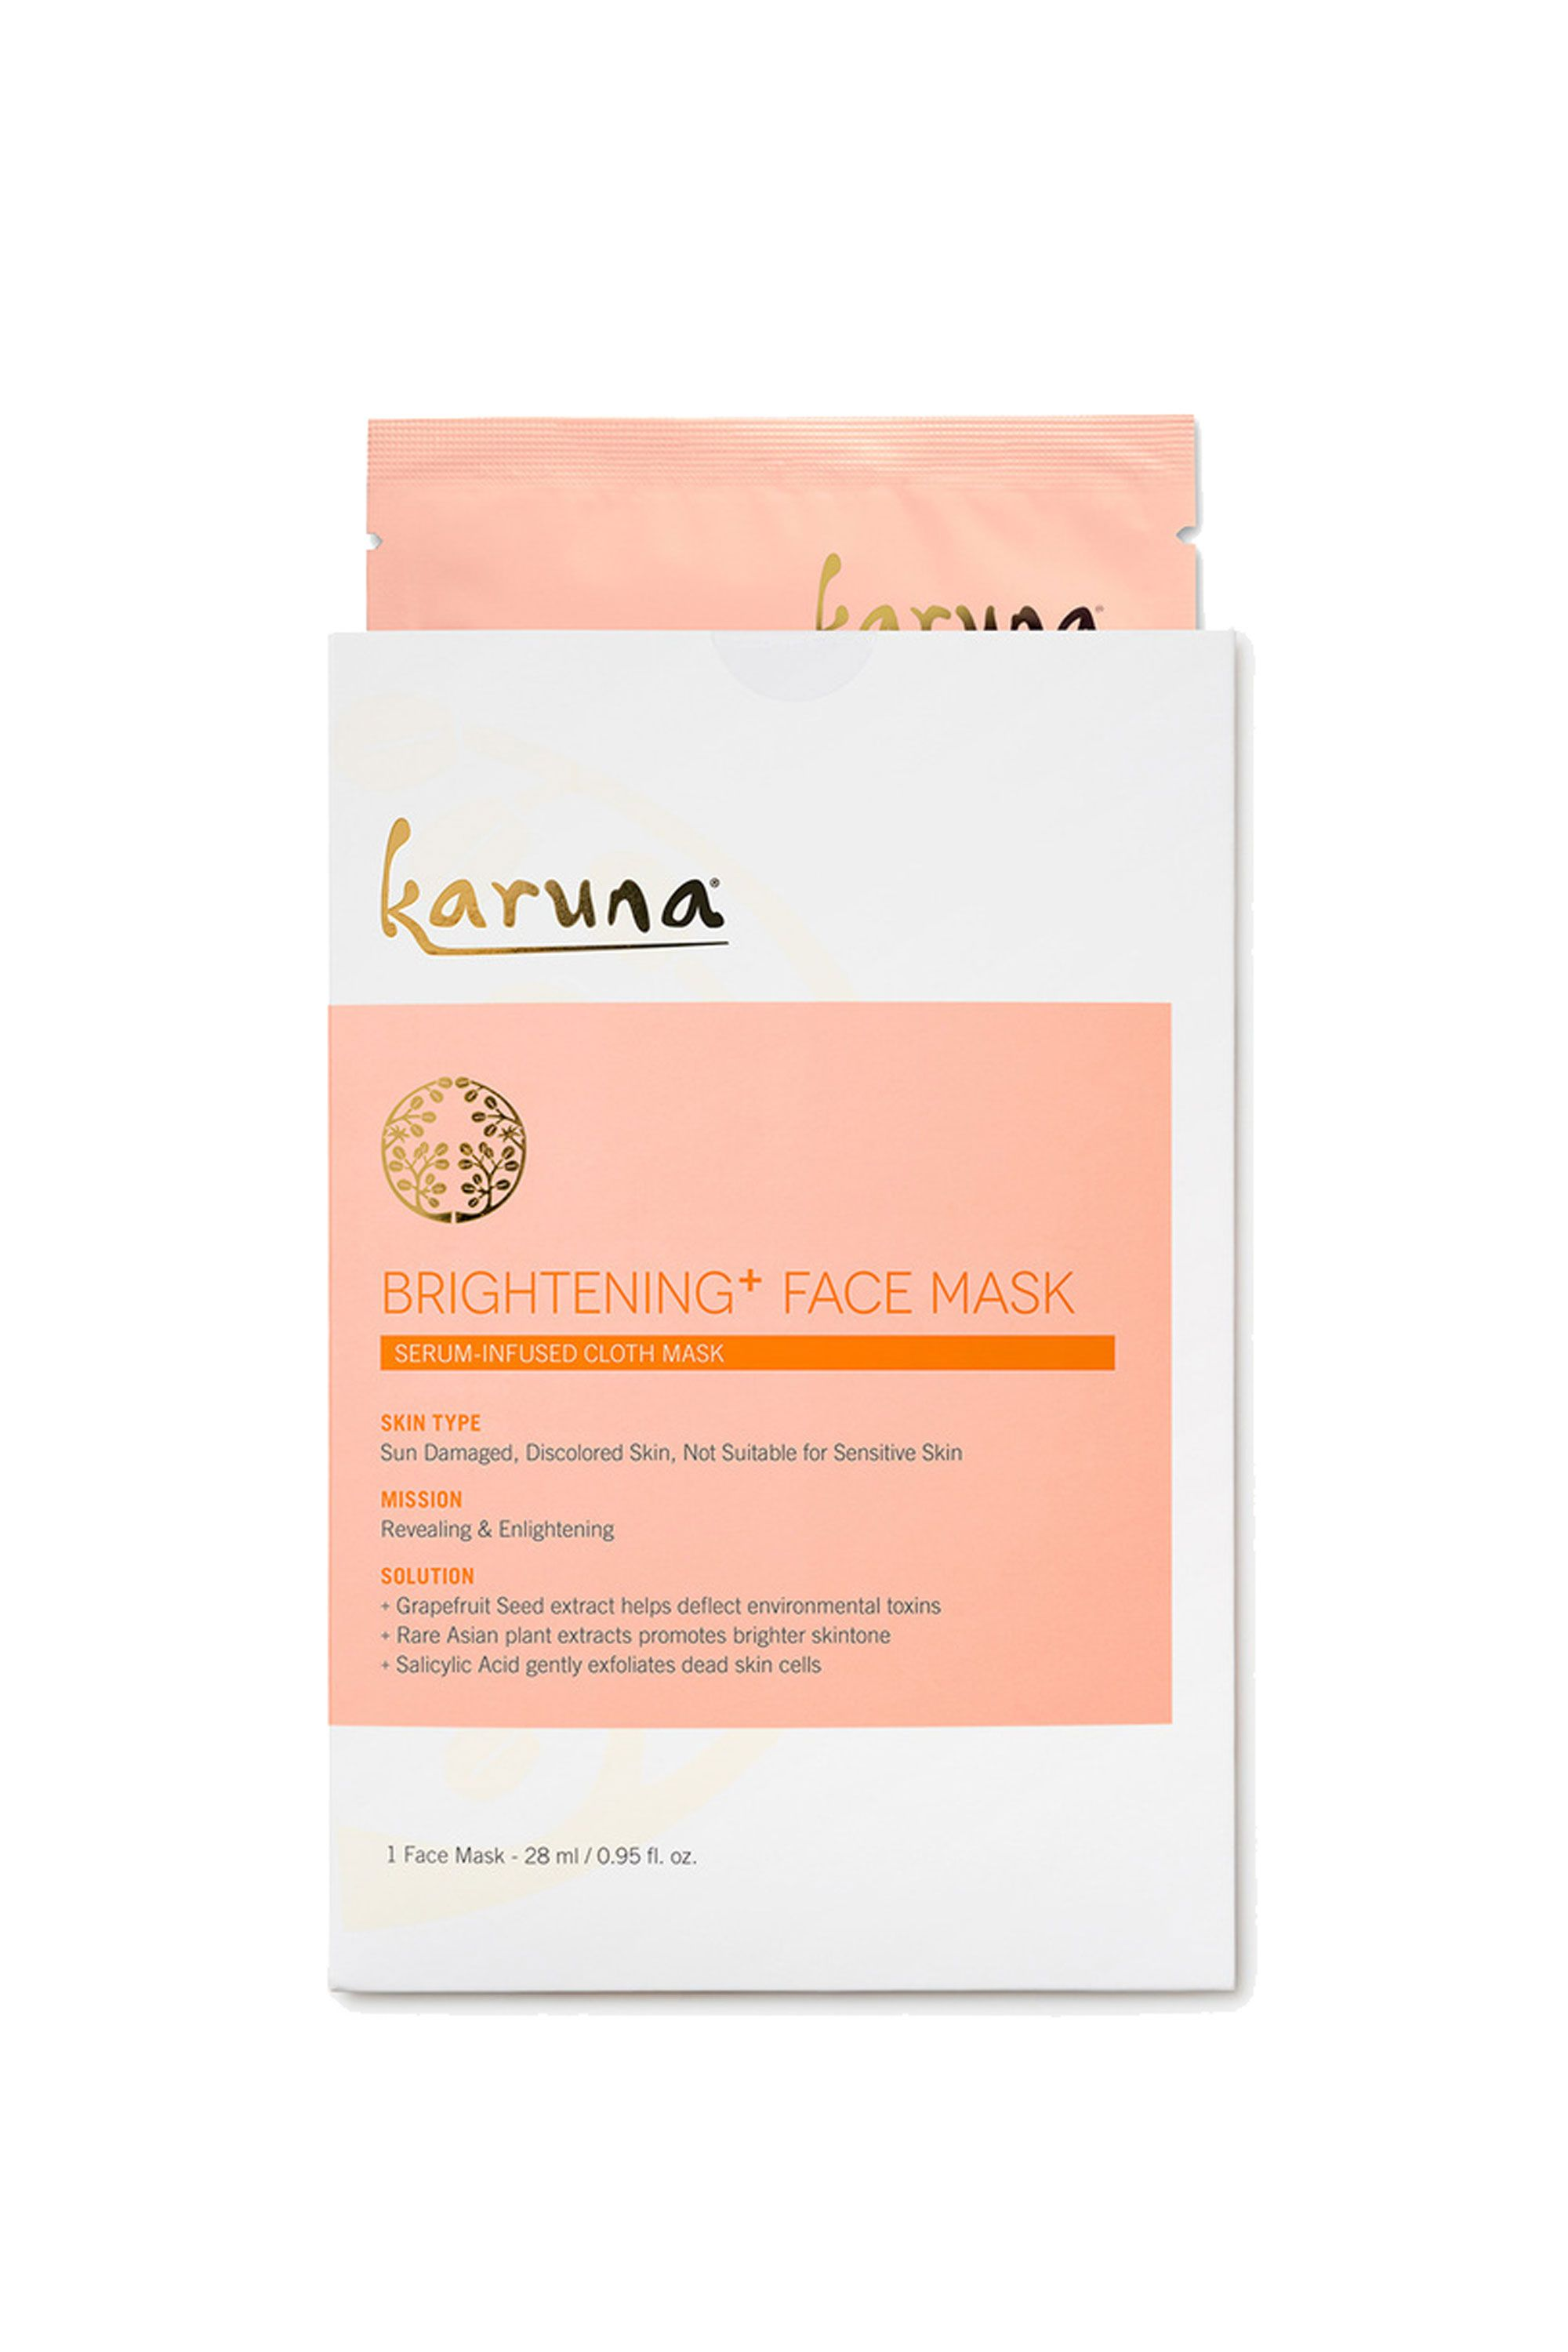 Karuna Brigtening+ Face Mask Single Karuna Brigtening+ Face Mask Single, $8 SHOP IT Between the natural wood pulp cloth and deep-penetrating serum (containing grapefruit seed extract, rare Asian plant extracts, and salicylic acid), this mask will help banish age spots for good.